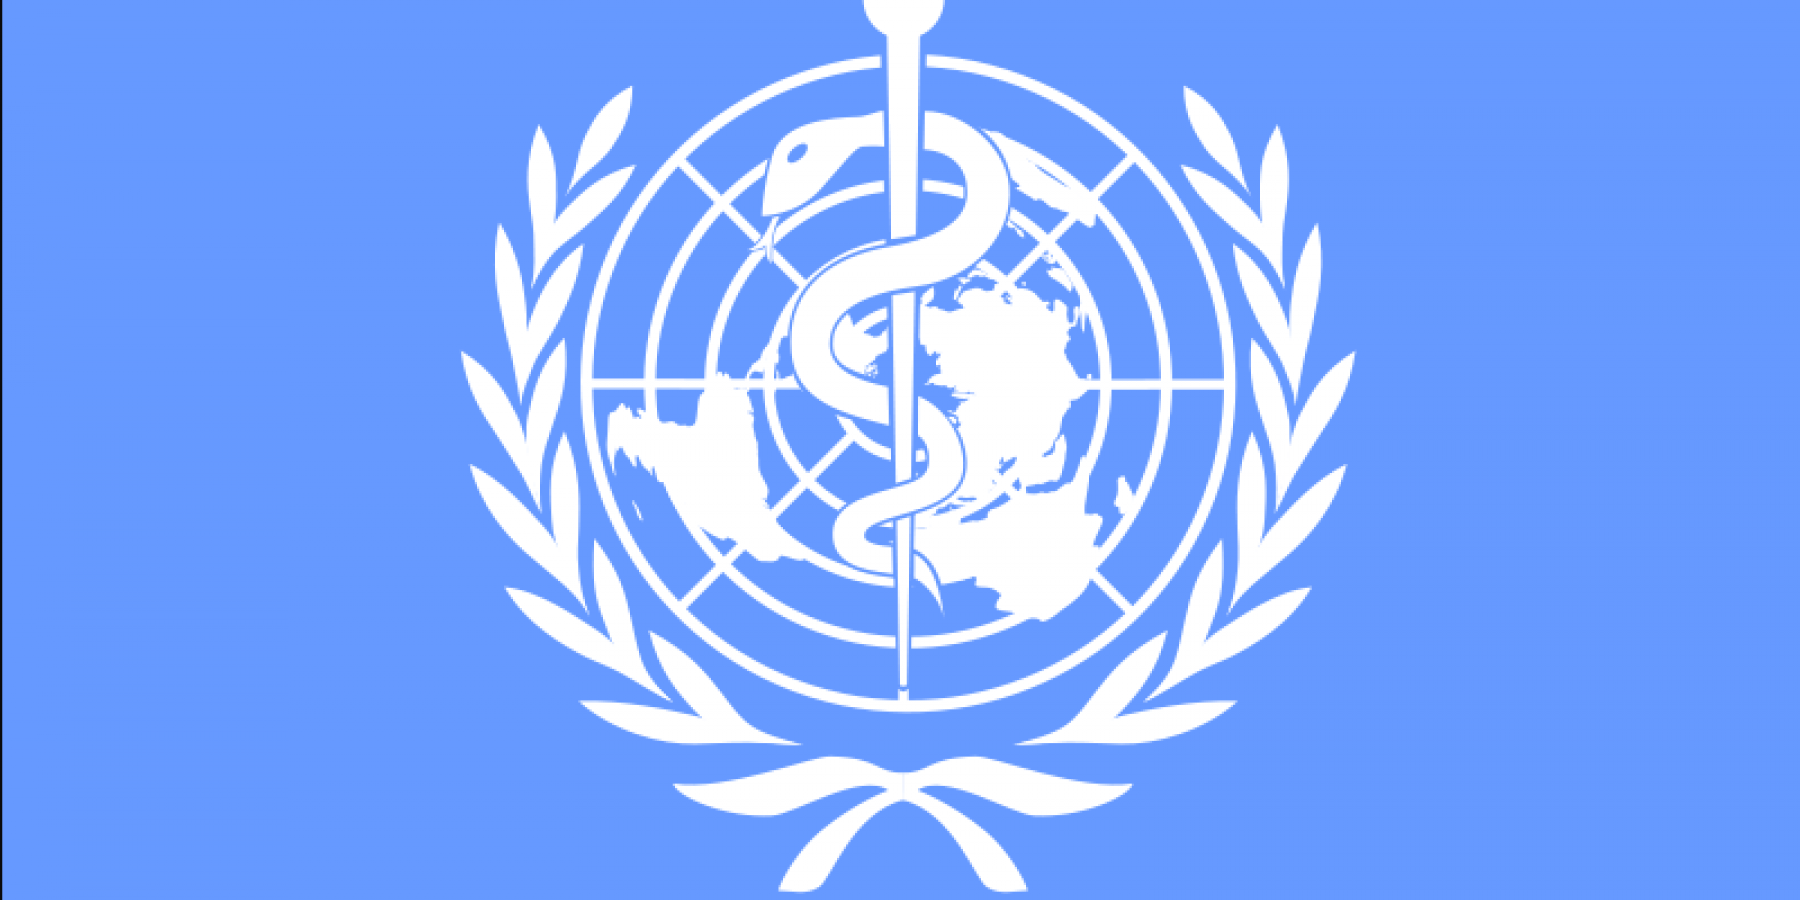 WHO refutes efficacy of 'mix and match' of different vaccines